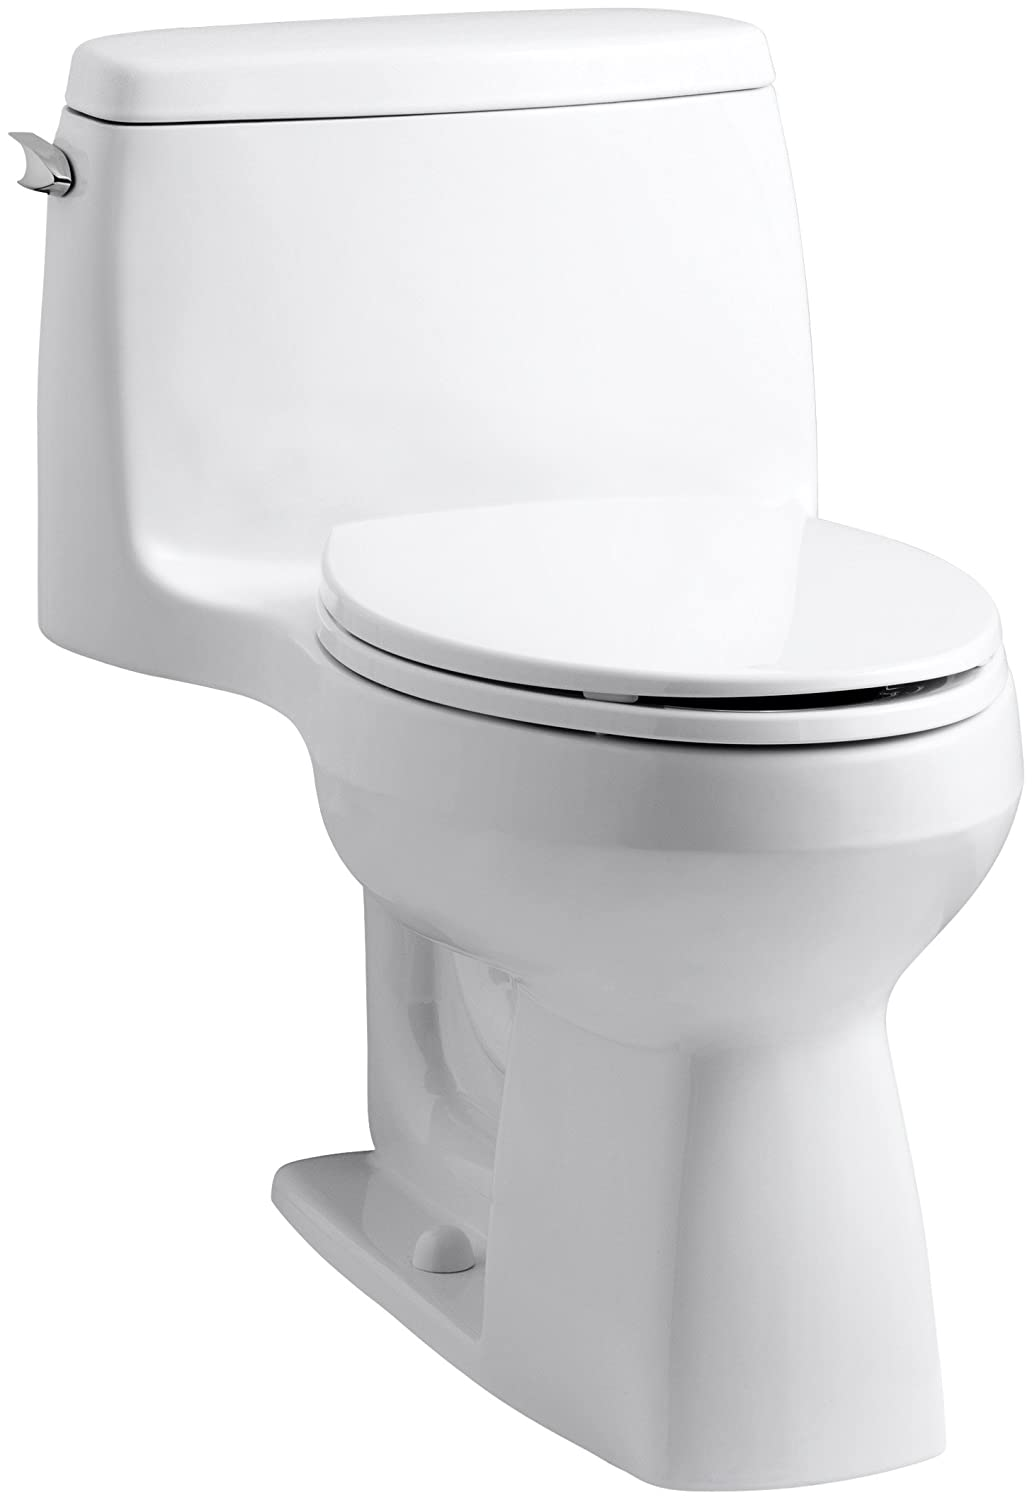 KOHLER 3810-0 Santa Rosa Comfort Height Elongated 1.28 GPF Toilet